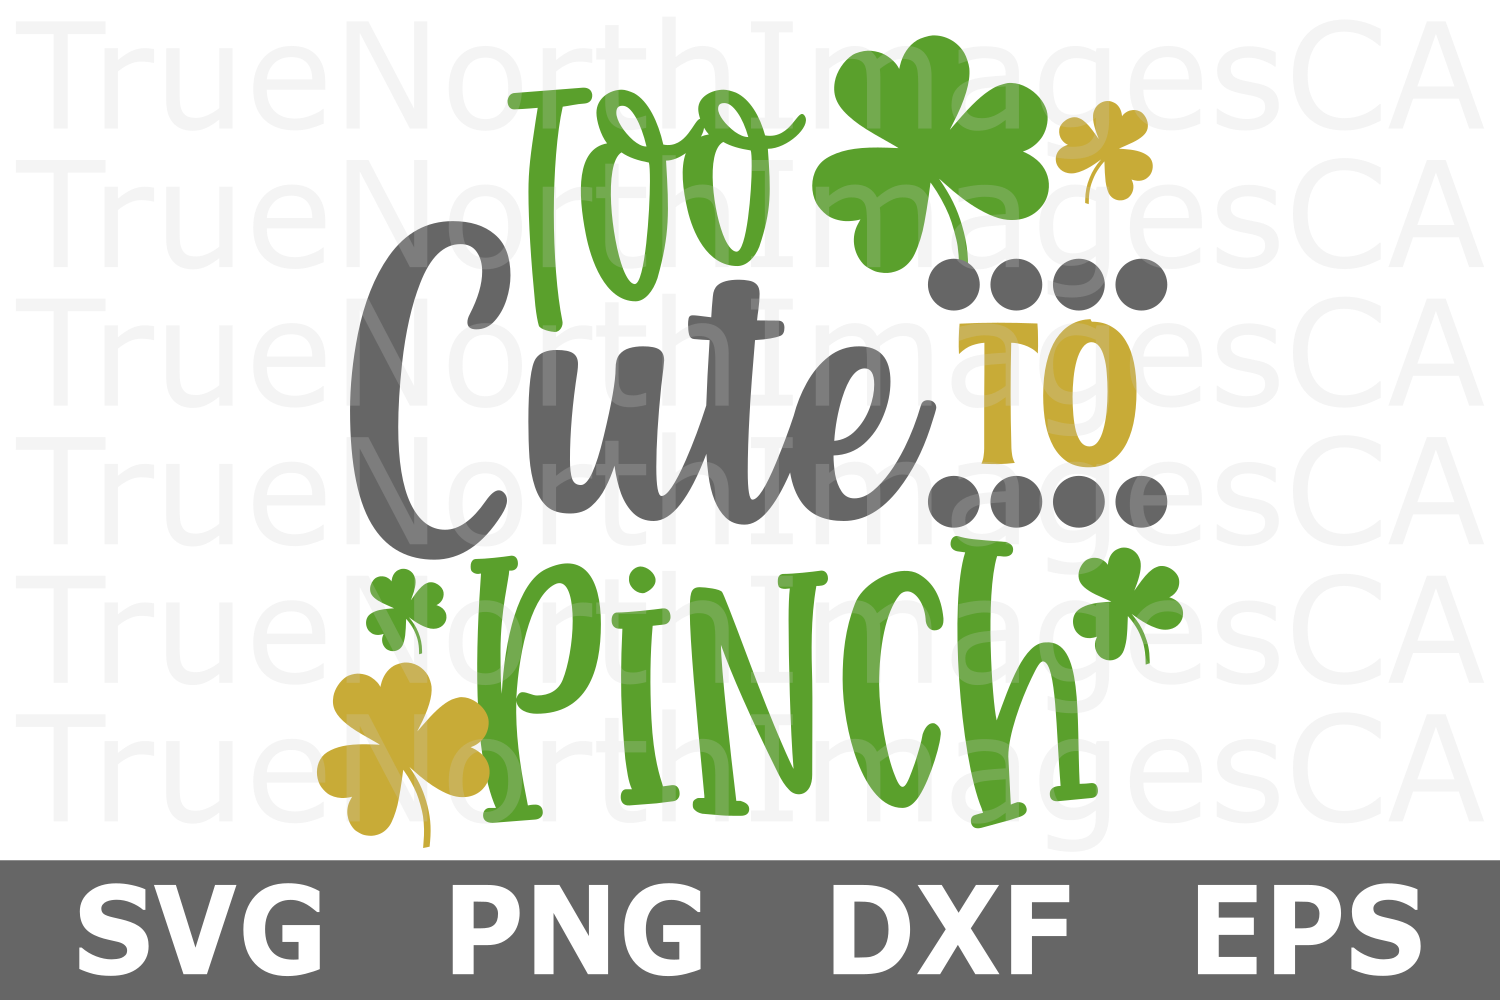 Too Cute to Pinch - St Patricks Day SVG Cut File example image 1